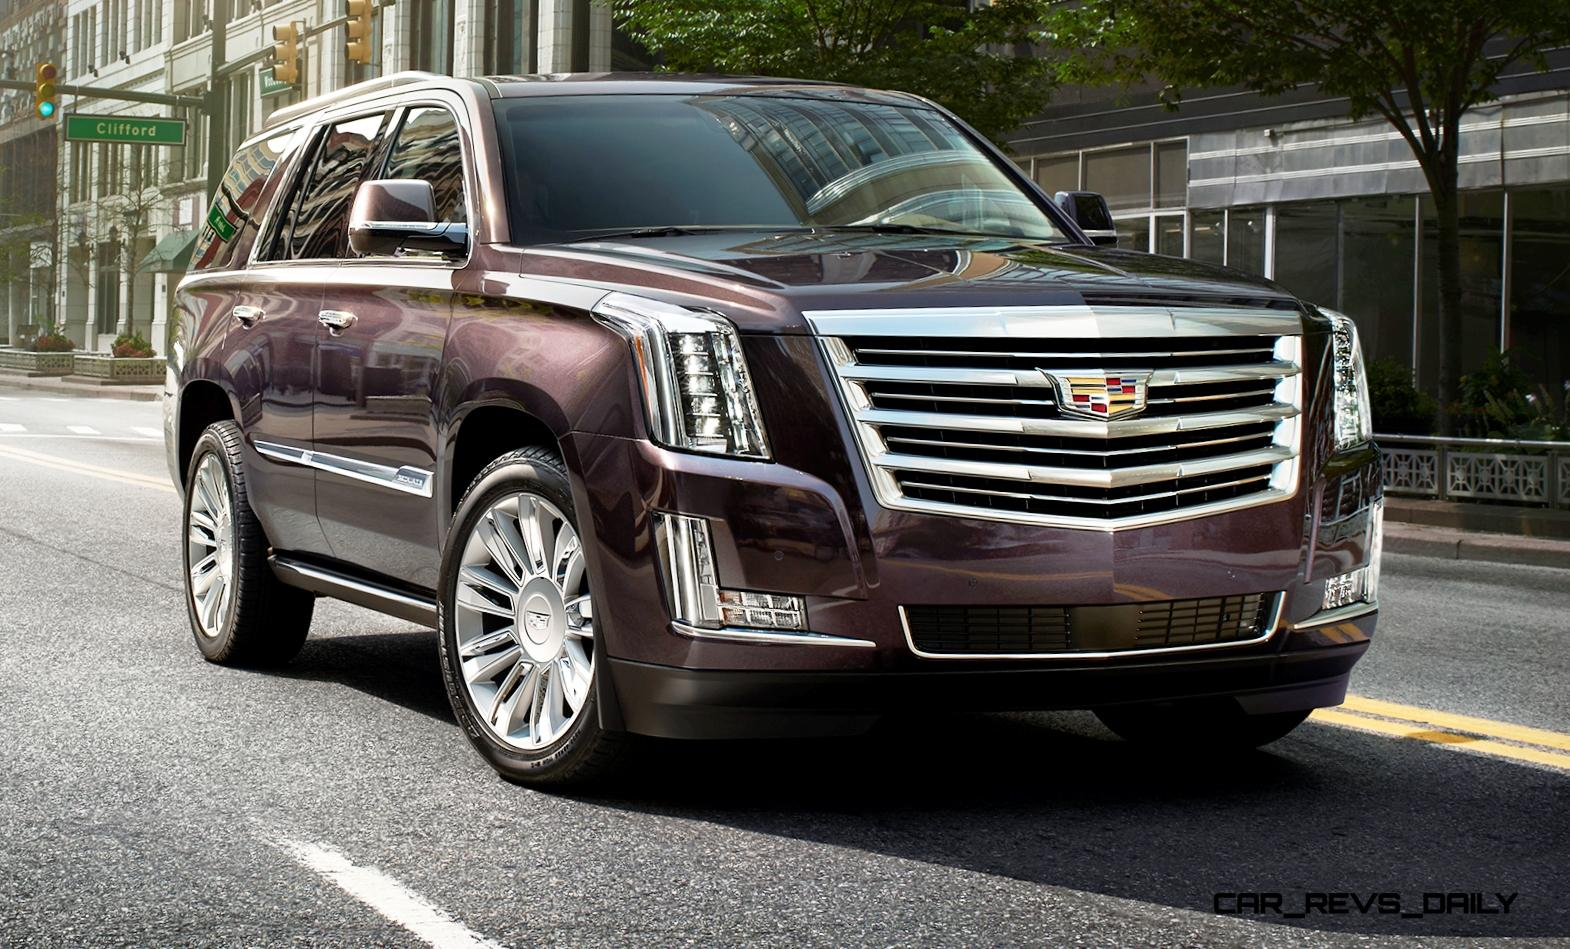 2015 cadillac escalade platinum brings new crest emblem 8. Black Bedroom Furniture Sets. Home Design Ideas